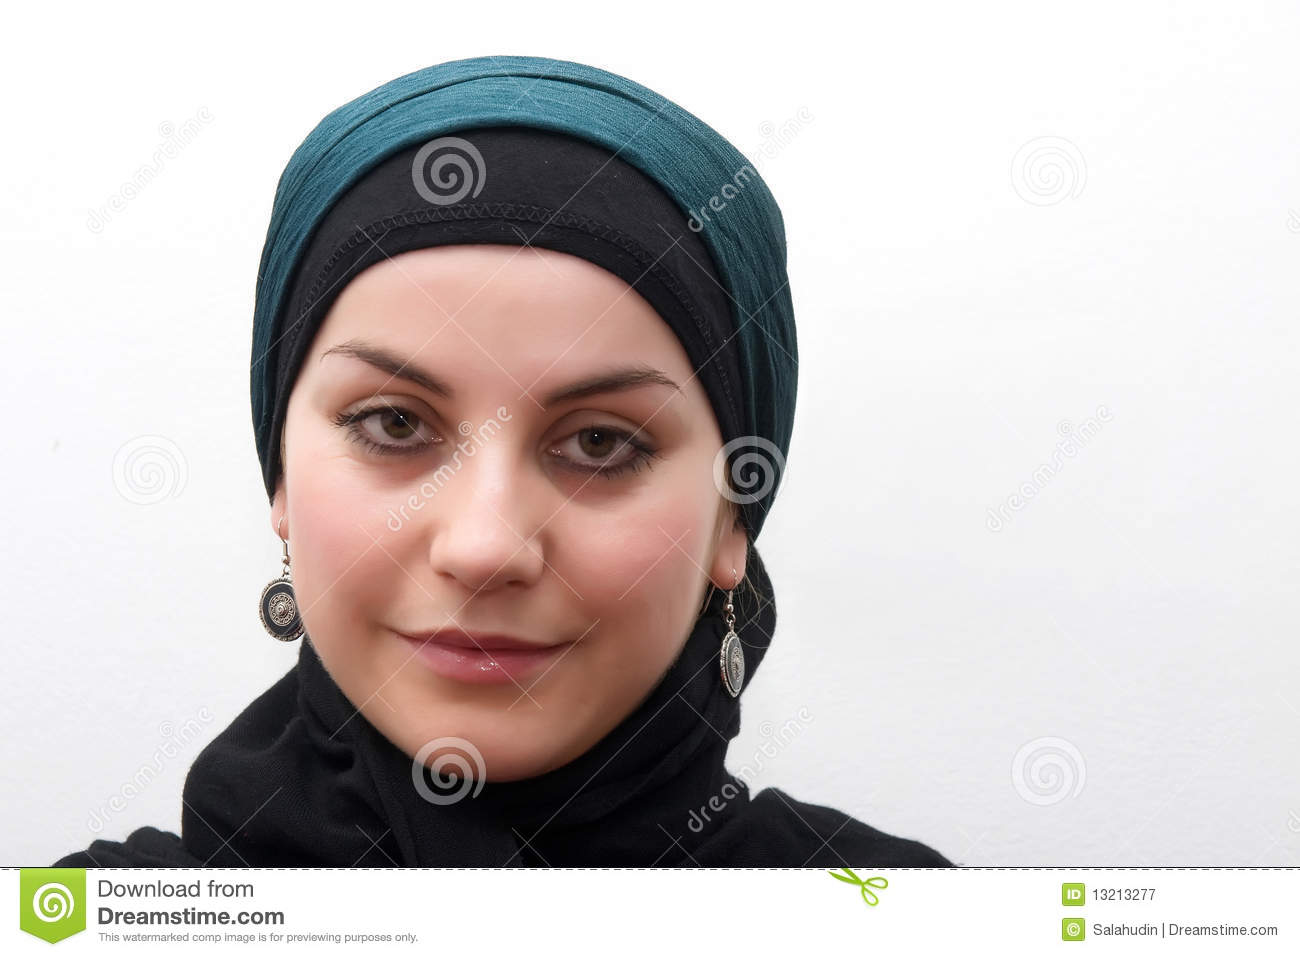 dating a young muslim man Nowadays online dating becomes easier  muslim and single - nowadays online dating becomes easier  free hookup sites dating young man.